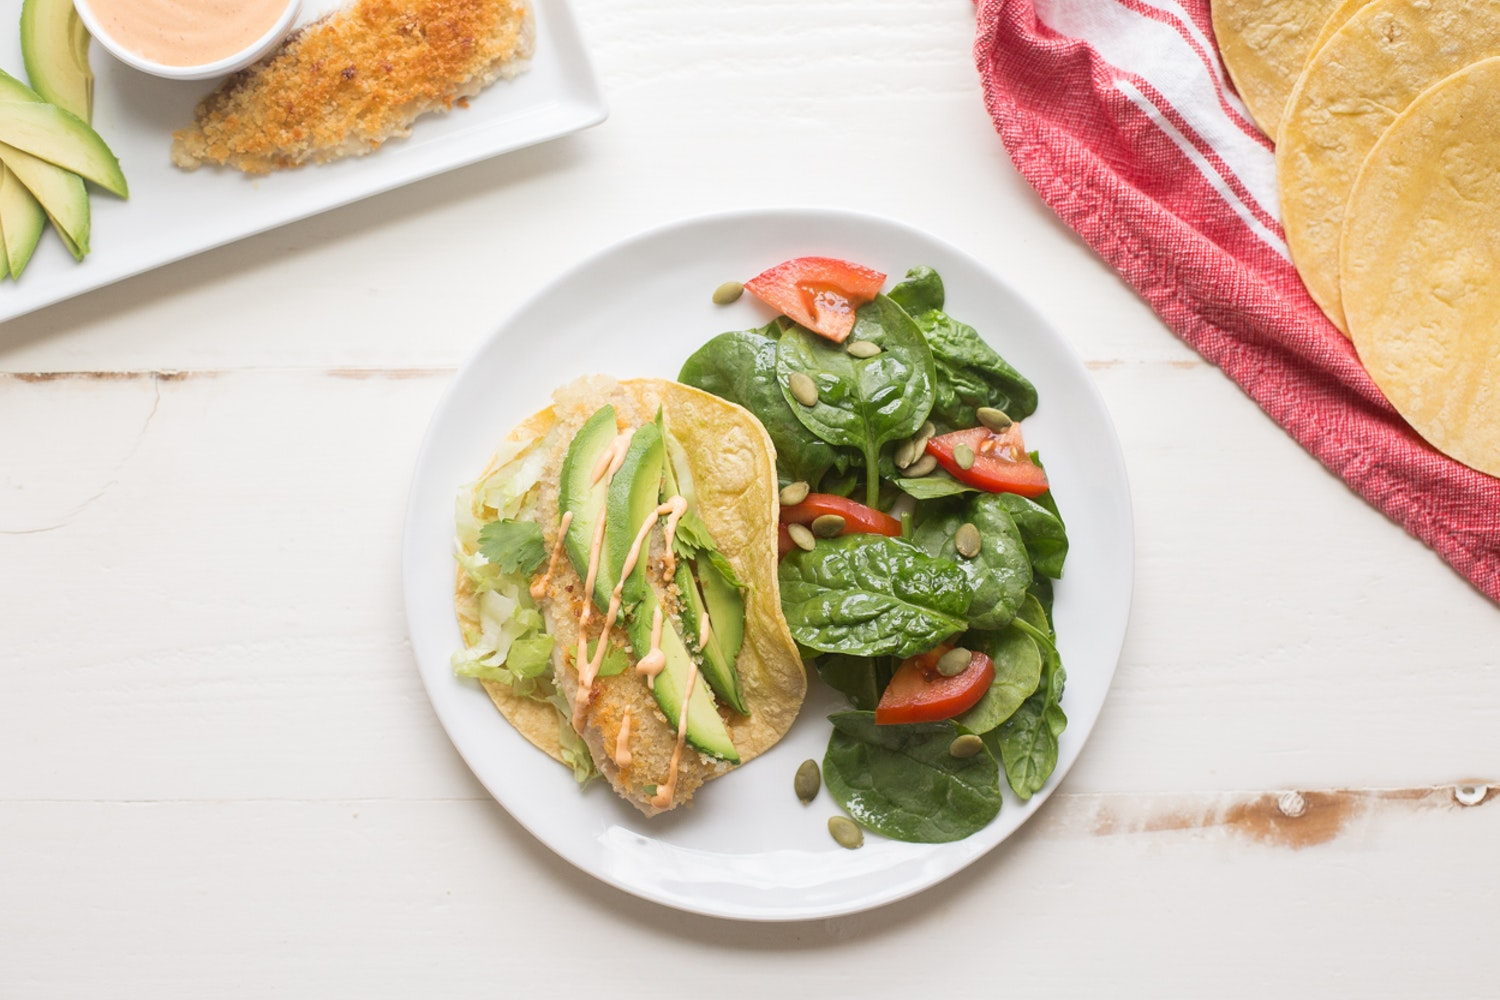 California-Style Tacos with Hearts of Palm